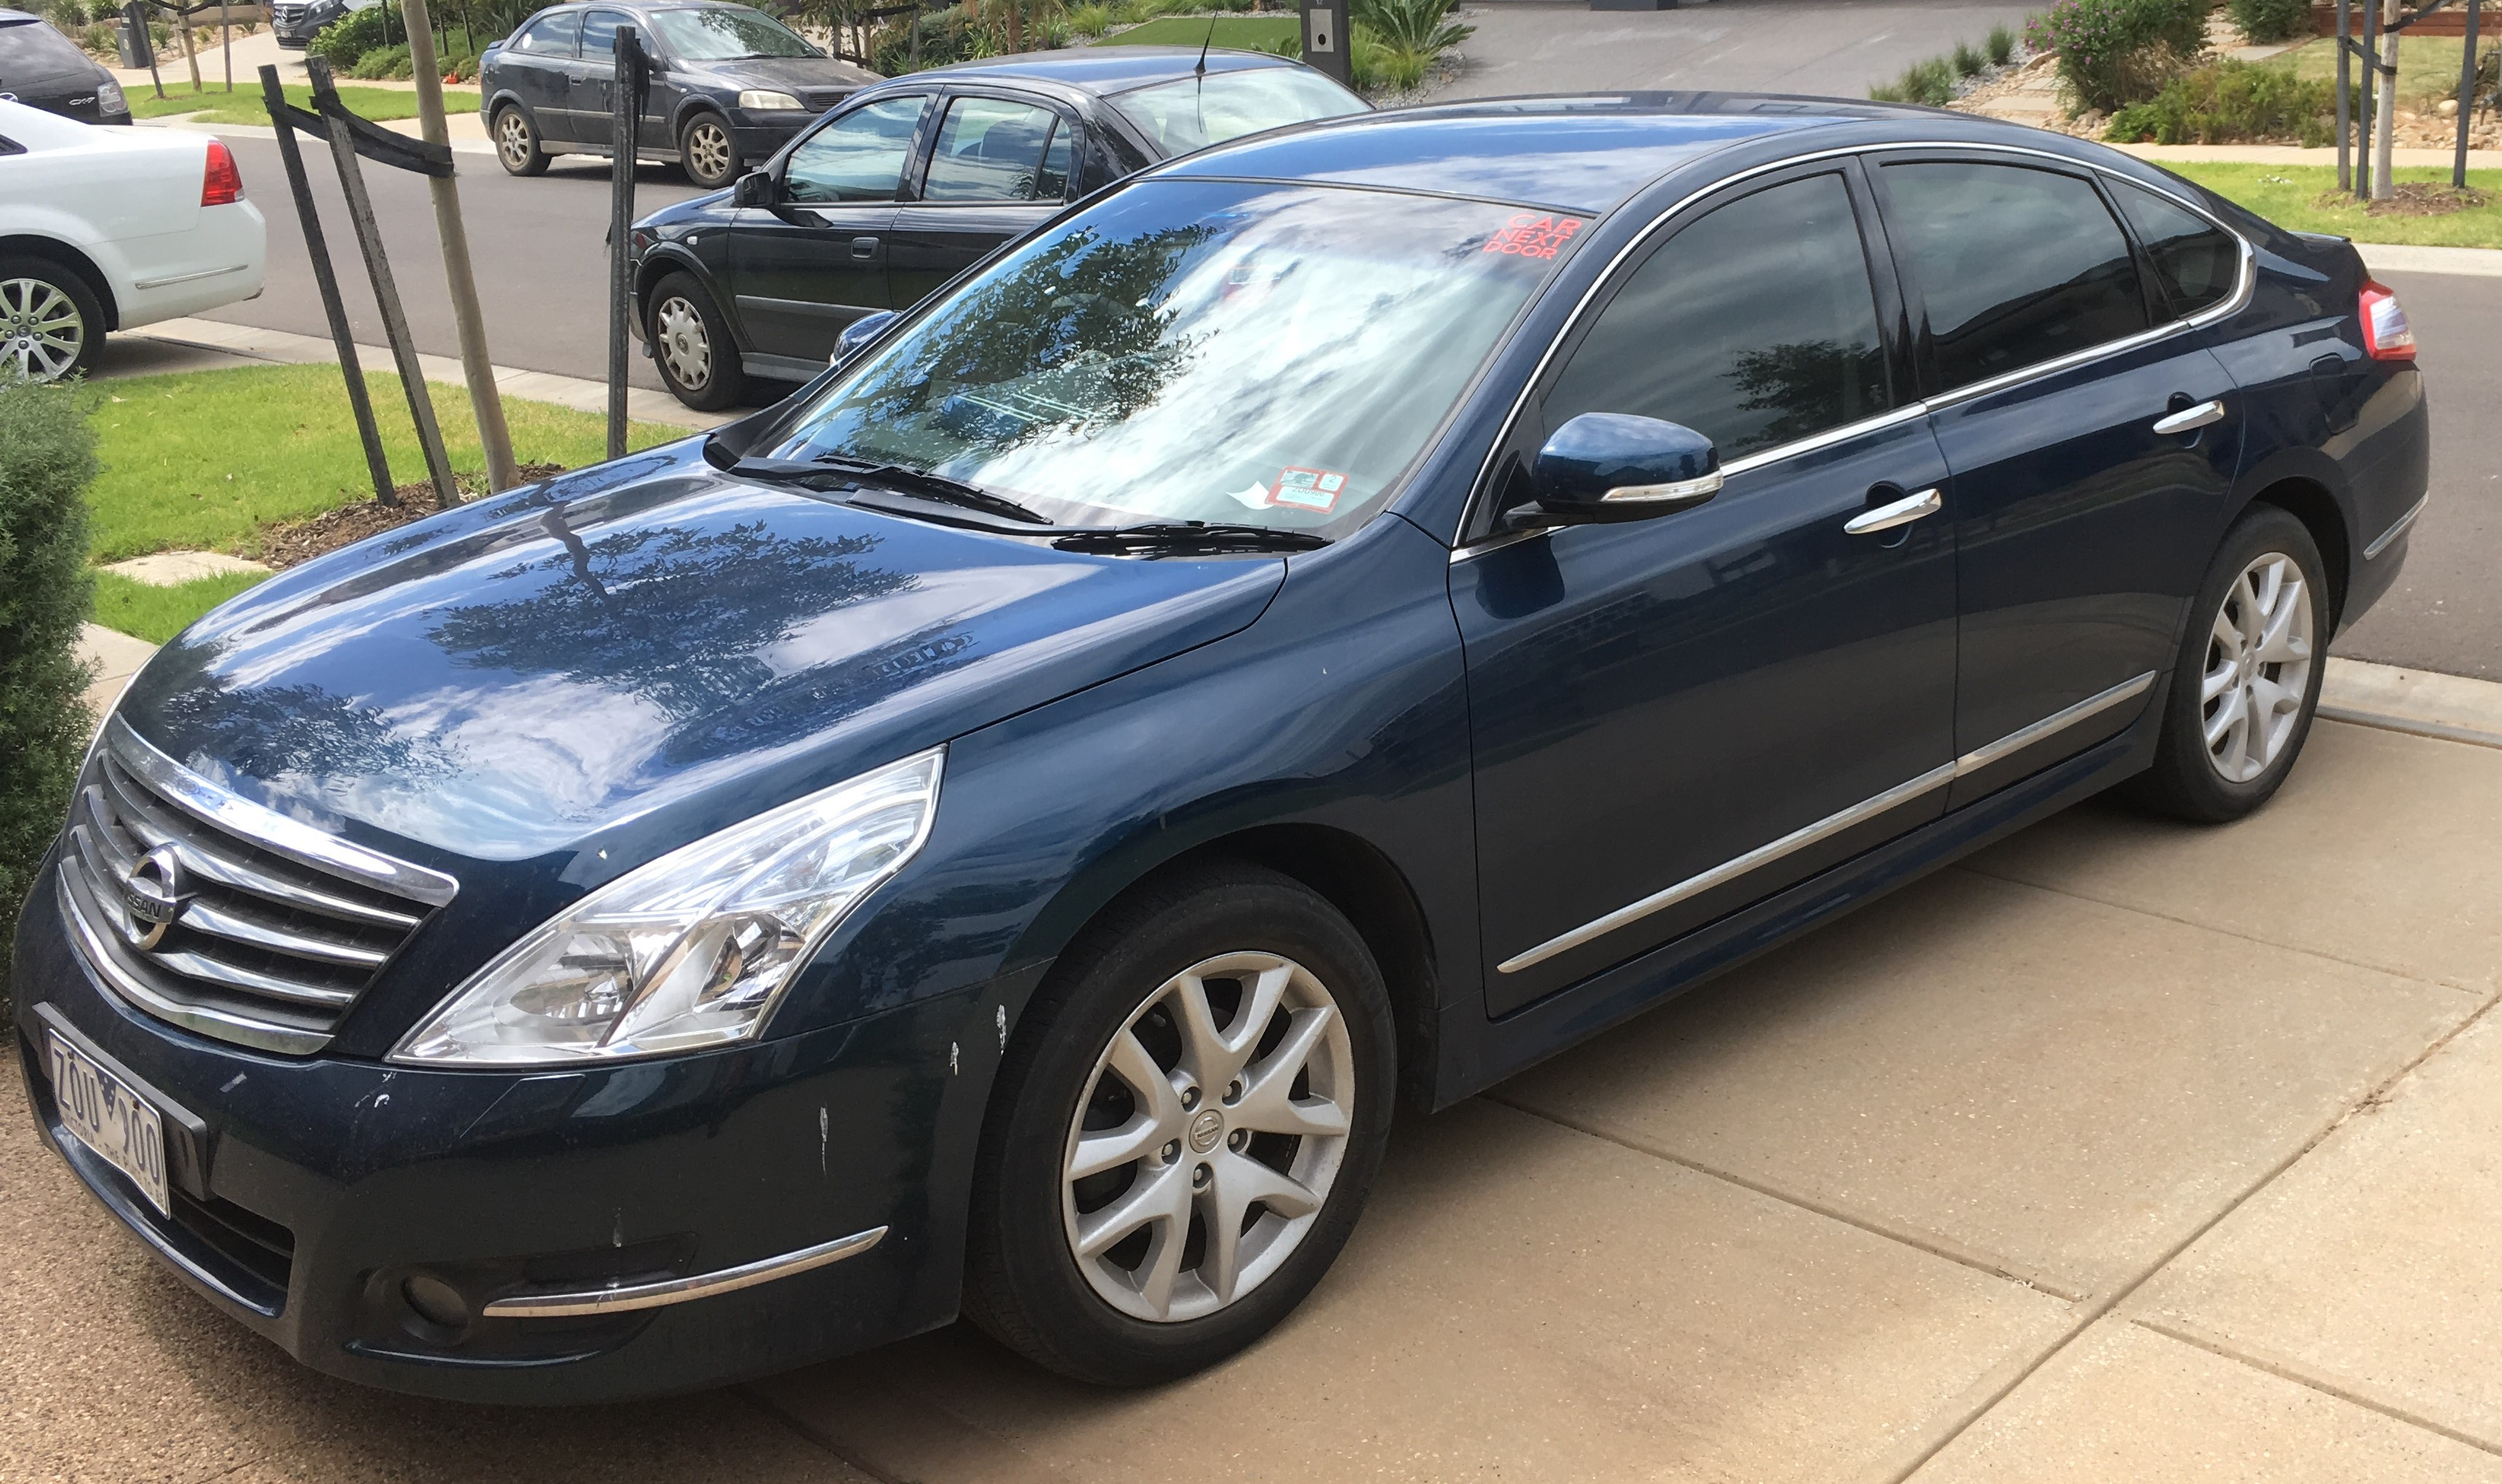 Picture of Rajat's 2012 Nissan maxima sts